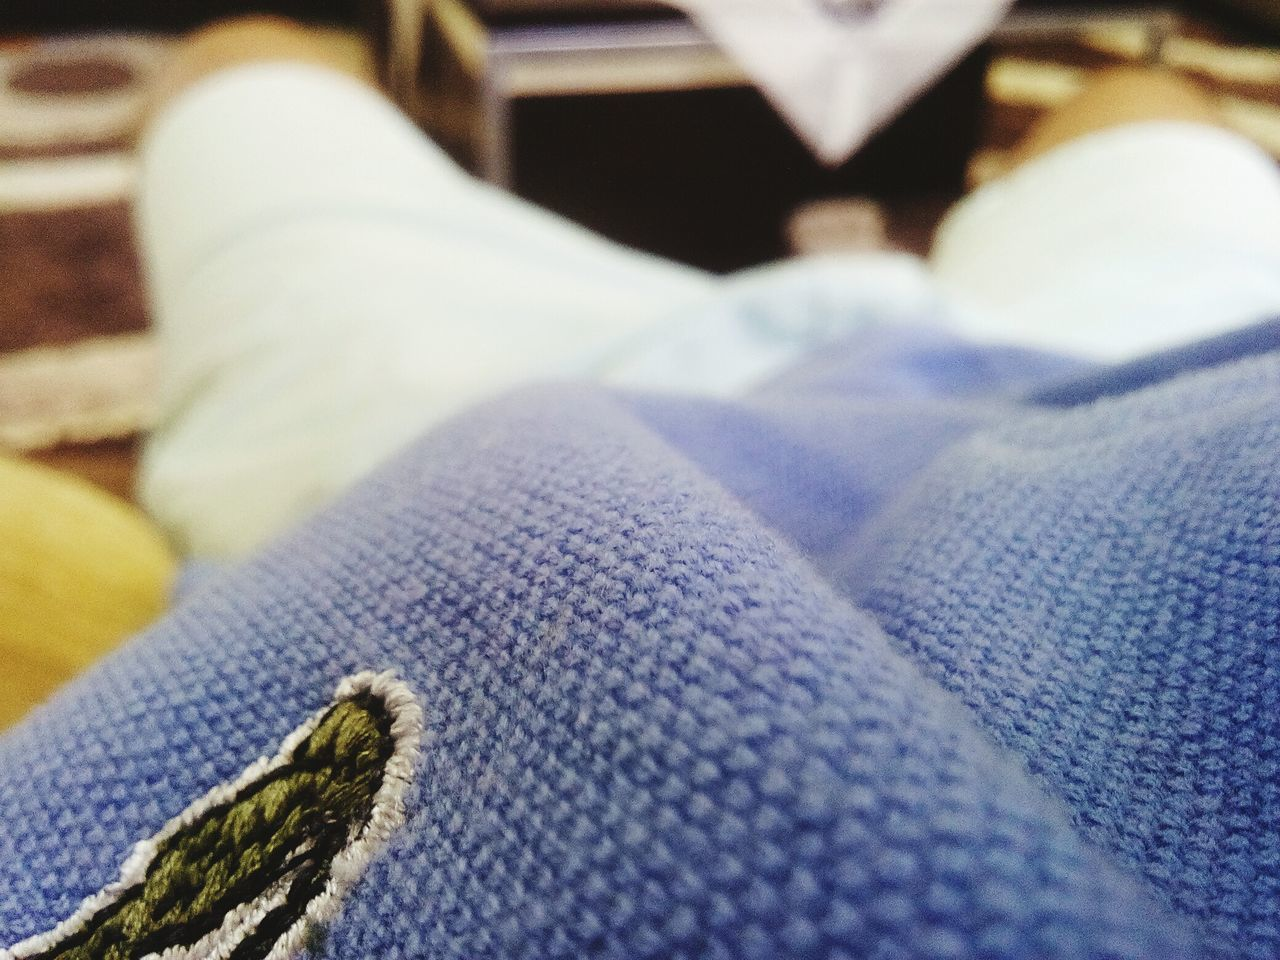 human leg, jeans, low section, shoe, fashion, human body part, real people, close-up, one person, sock, indoors, blue, leisure activity, lifestyles, wool, relaxation, day, warm clothing, people